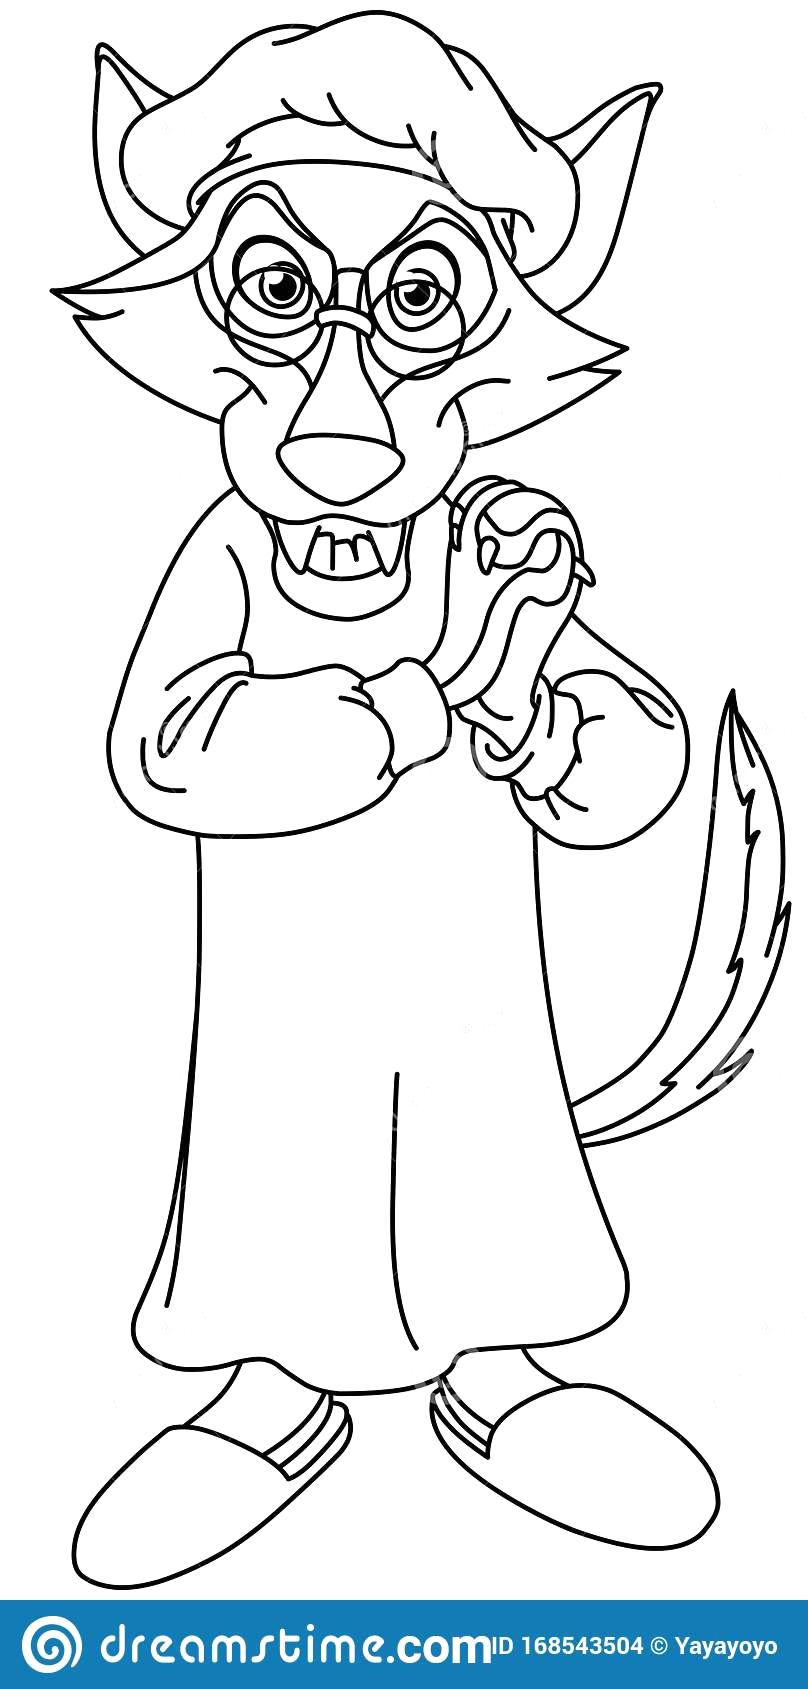 Little Red Riding Hood Wolf Coloring Pages Outlined Little Red Riding Hood Wolf Stock Vector